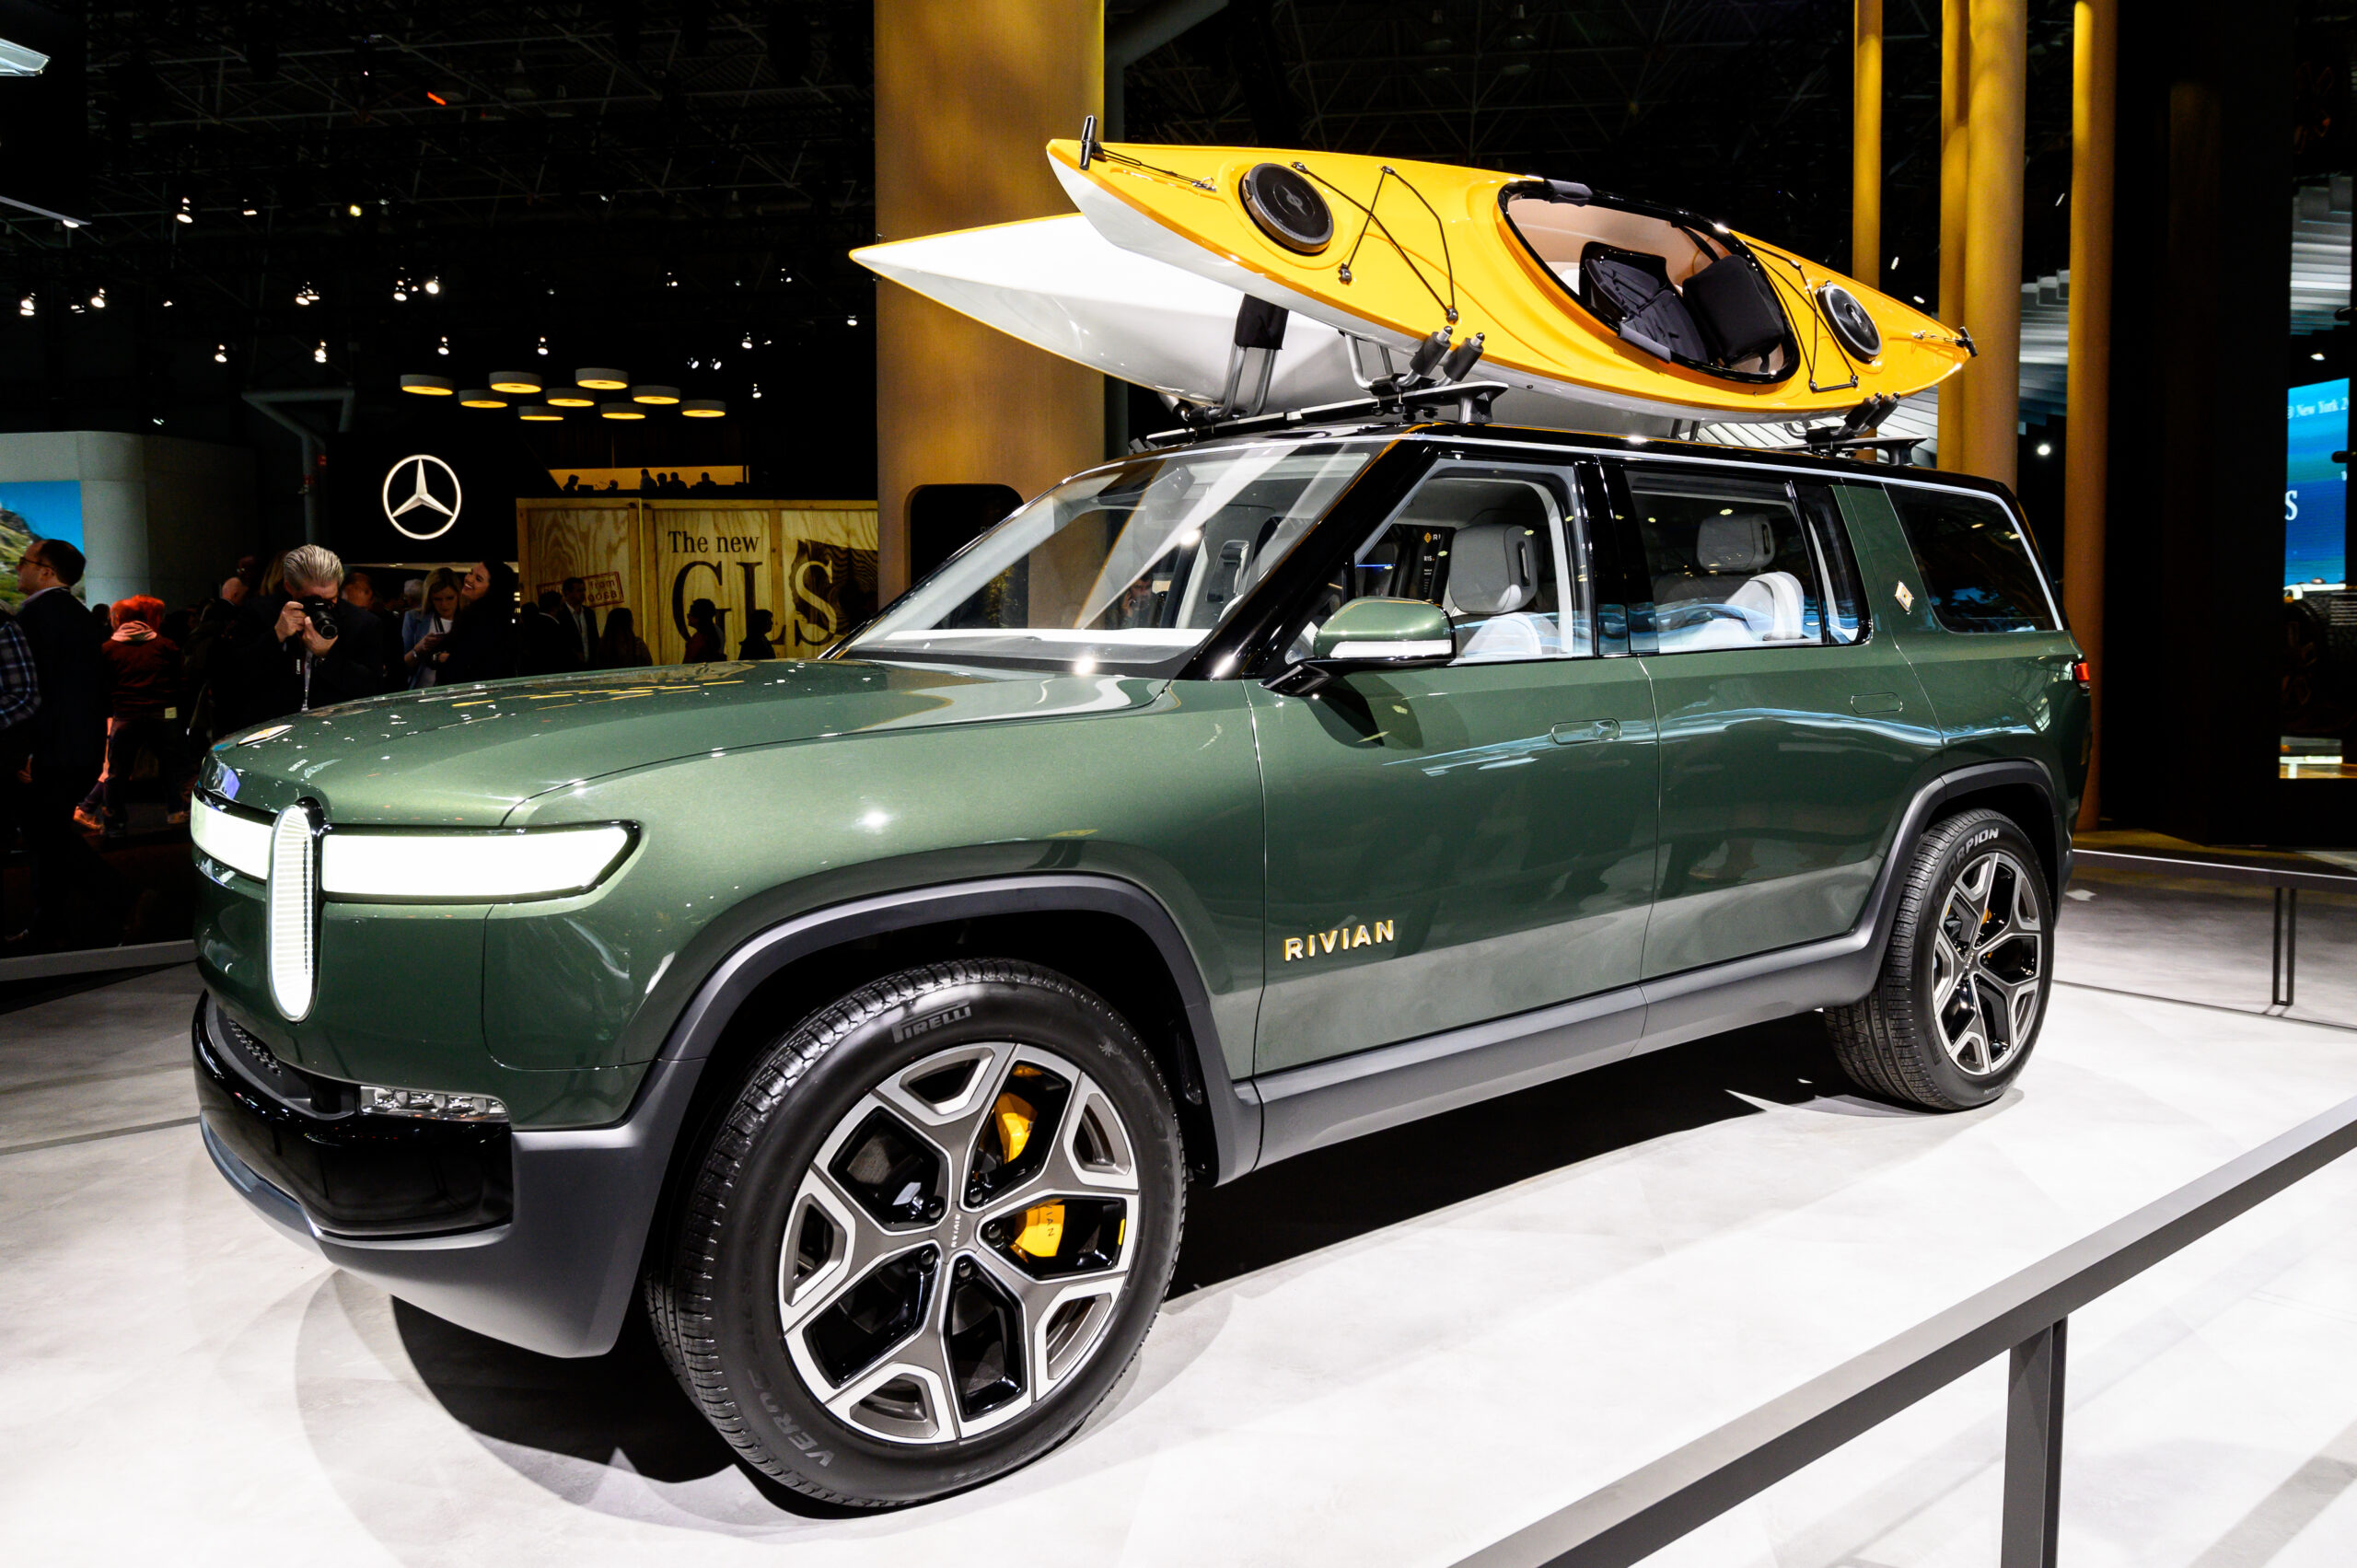 Rivian plans a network of 10,000 EV chargers in North America by 2023